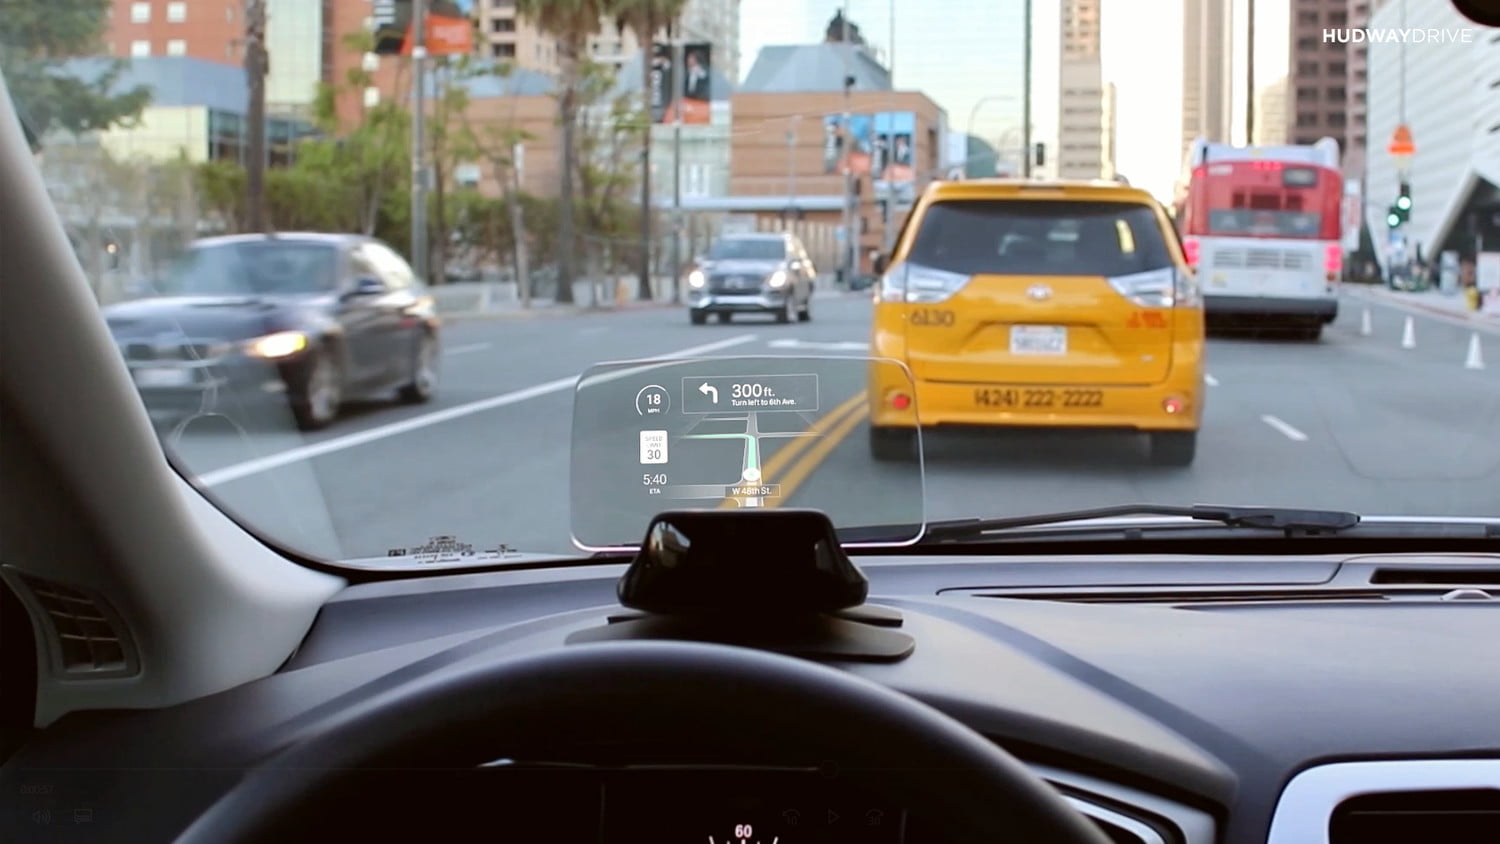 hudway drive heads up display hands on review live 3